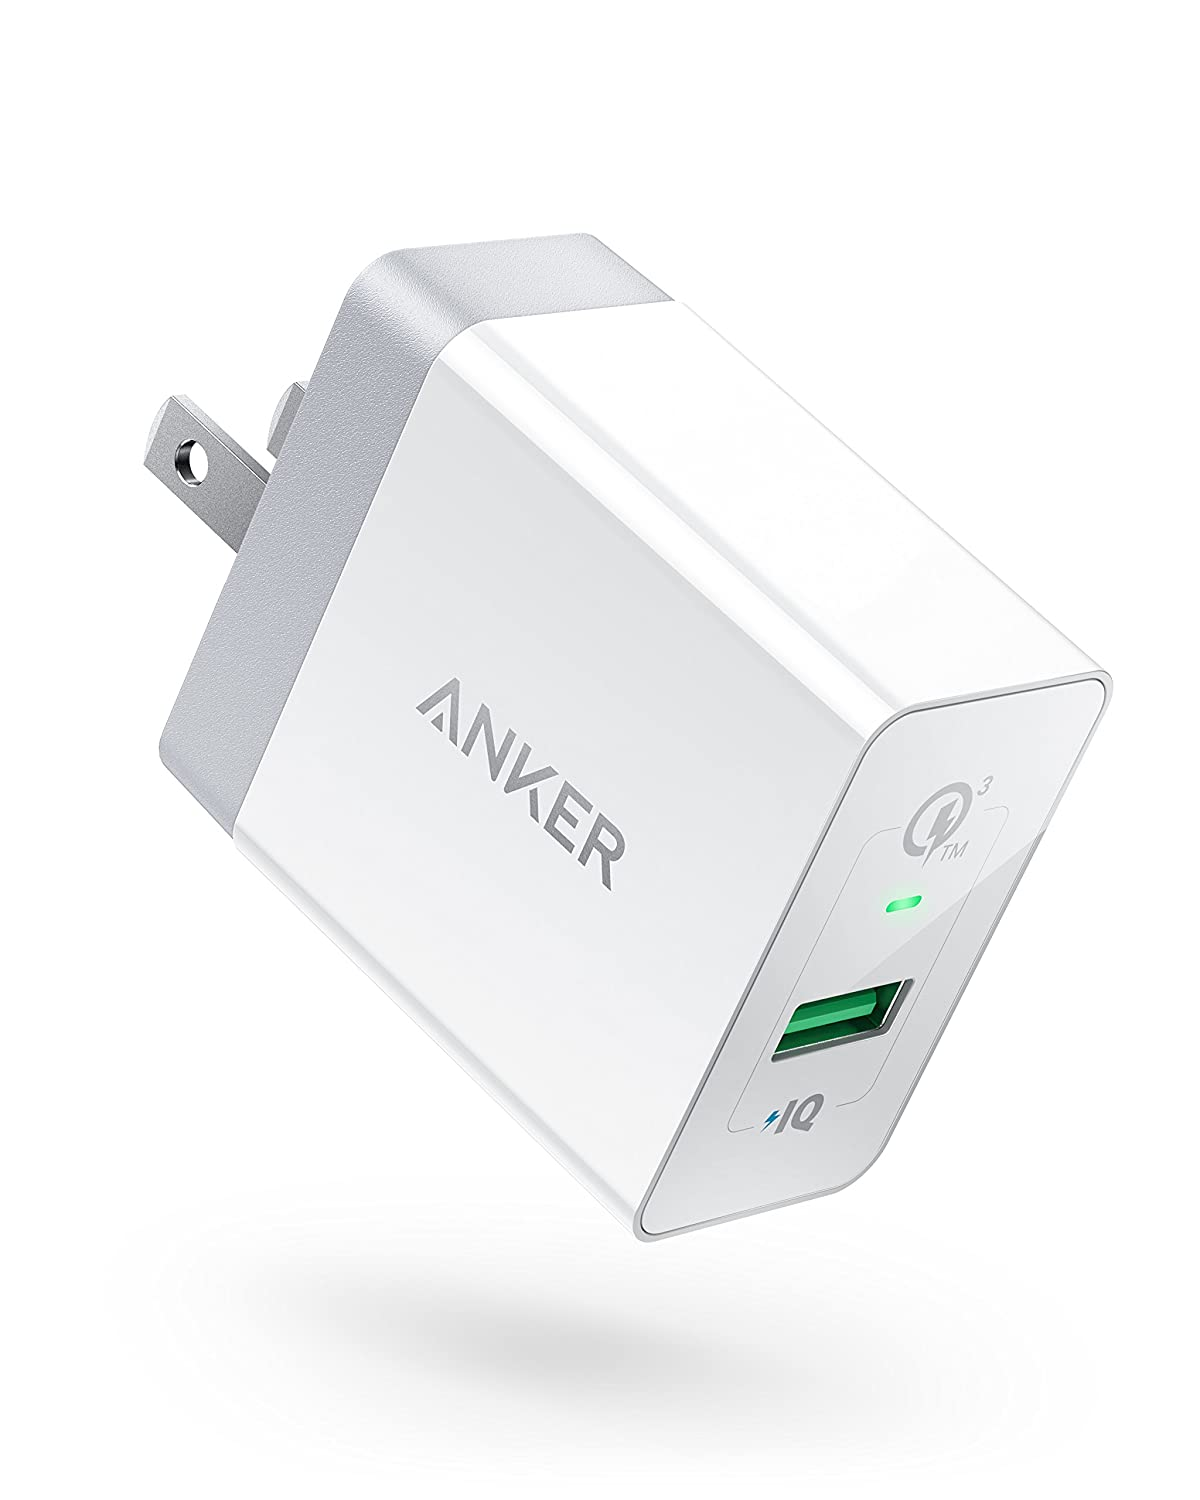 Quick Charge 3.0, Anker 18W USB Wall Charger (Quick Charge 2.0 Compatible) PowerPort+ 1 for Galaxy S7/S6/Edge/Plus, Note 5/4, LG G4, HTC One A9/M9, Nexus 6, iPhone, iPad and More AK-848061056976